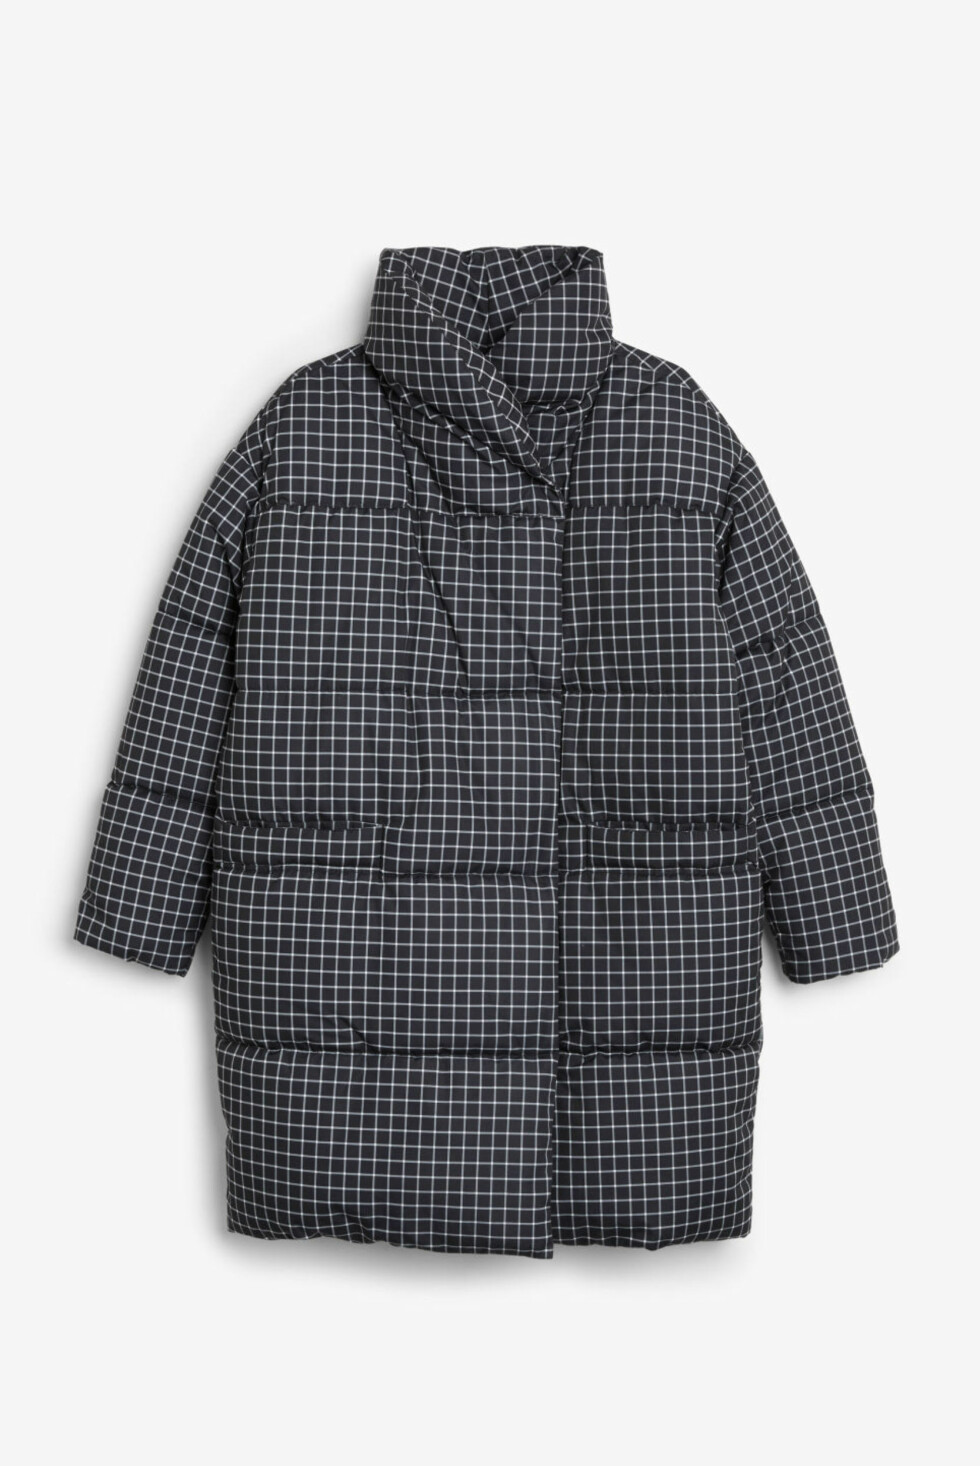 Boblejakke fra Monki |700,-| https://www.monki.com/en_sek/clothing/coats-and-jackets/product.puff-coat-black-magic/check-it-out.0409206006.html